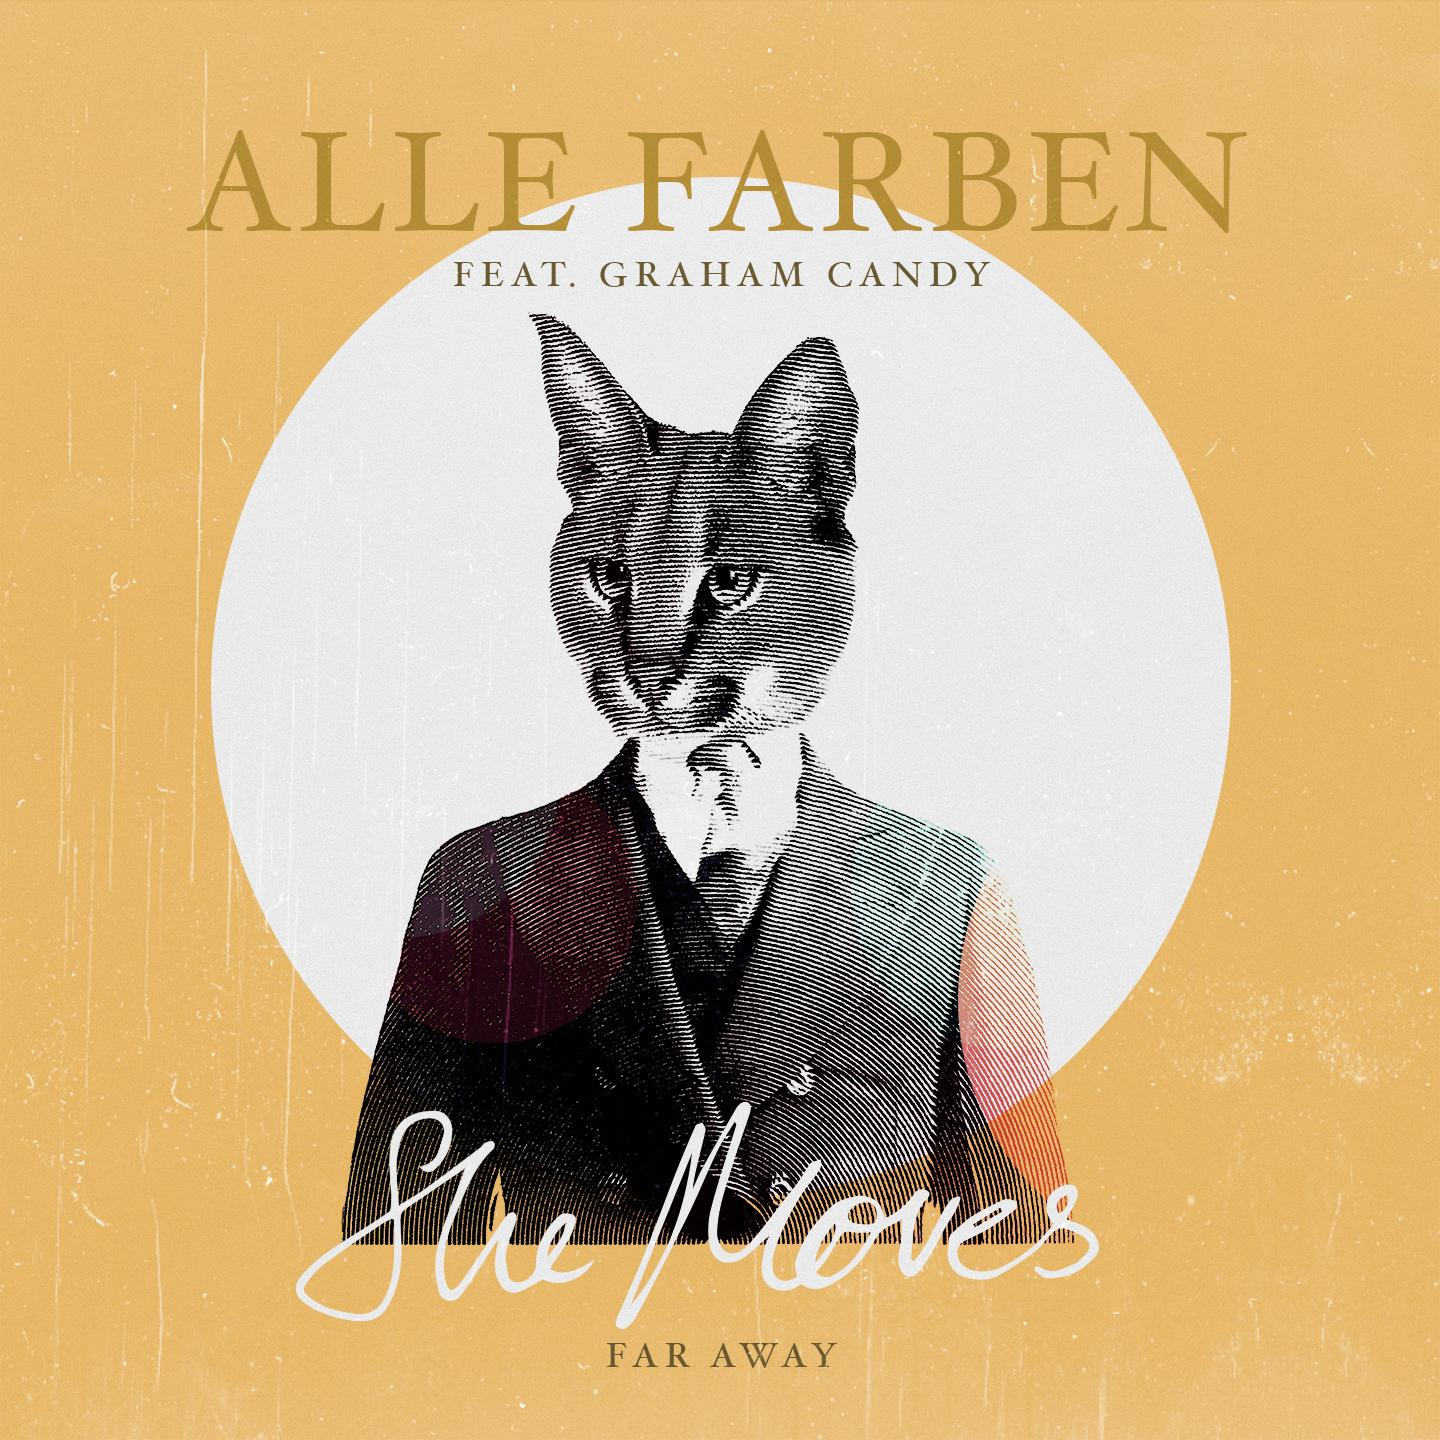 Alle Farben ft Graham Candy - She Moves - Far Away